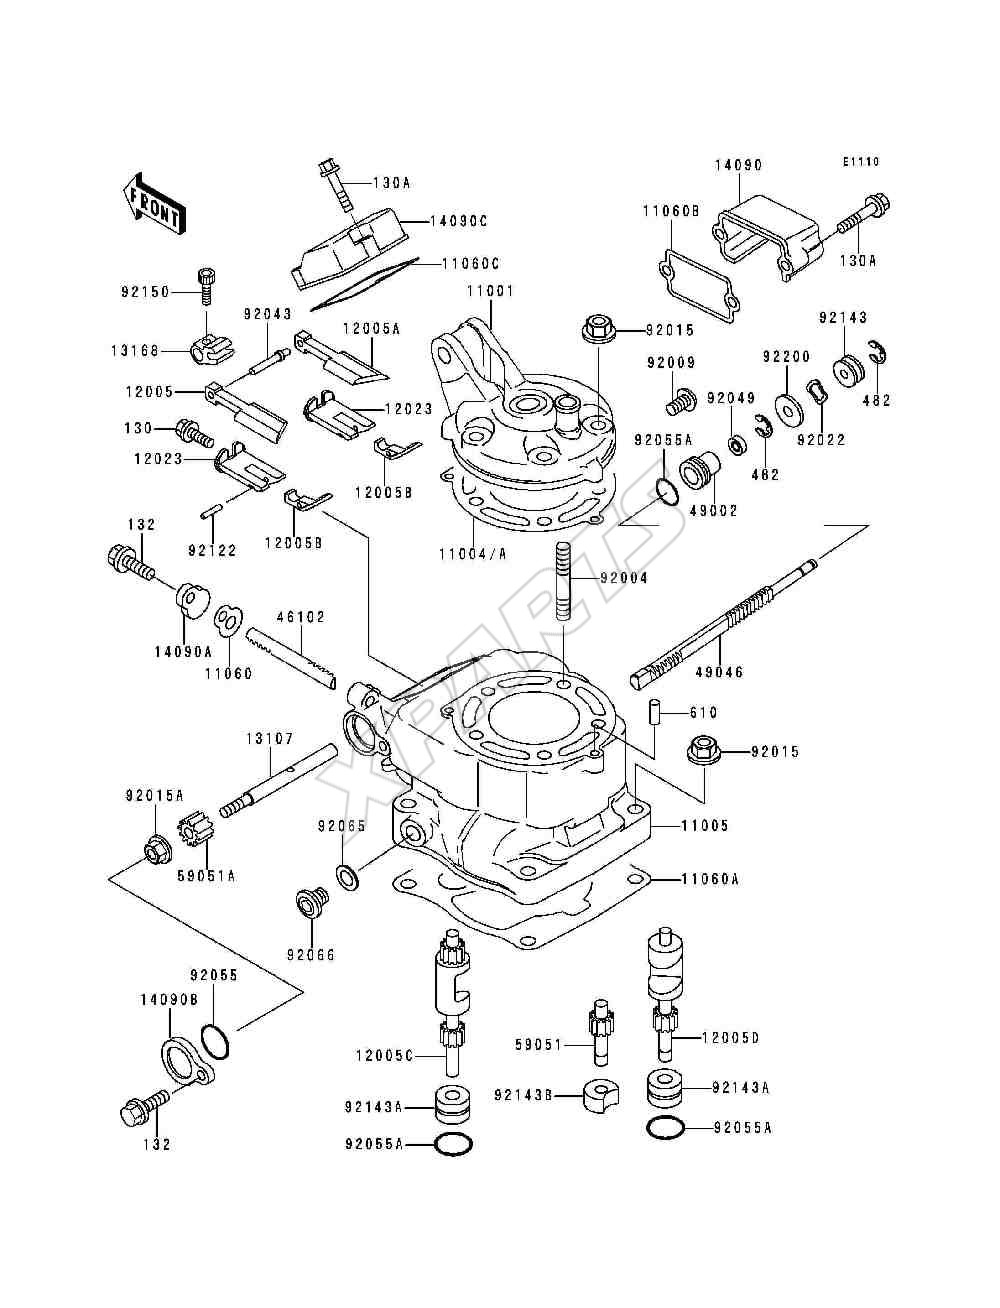 Ninja 650 Street Fighter Wiring Diagrams likewise Yaskawa Z1000 Bypass Wiring Diagram additionally 2005 Jaguar S Type Wiring Diagram as well 1998 Ford Explorer 4 0 Engine Wiring Diagram together with Atwood Furnace Service Manual. on z1000 wiring diagram